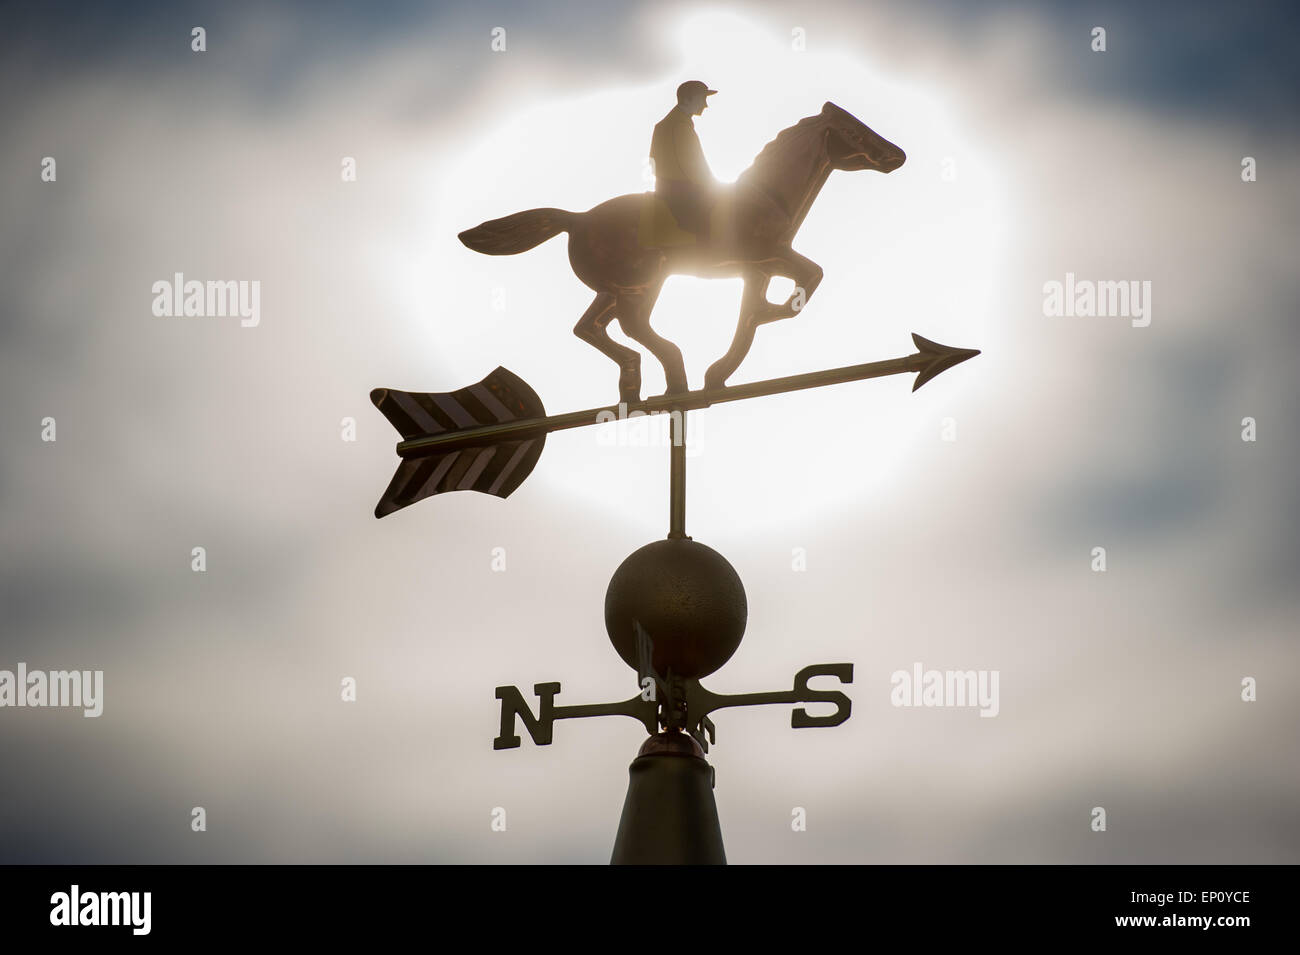 Weather vane of a jockey on a horse in Baltimore, Maryland, USA - Stock Image